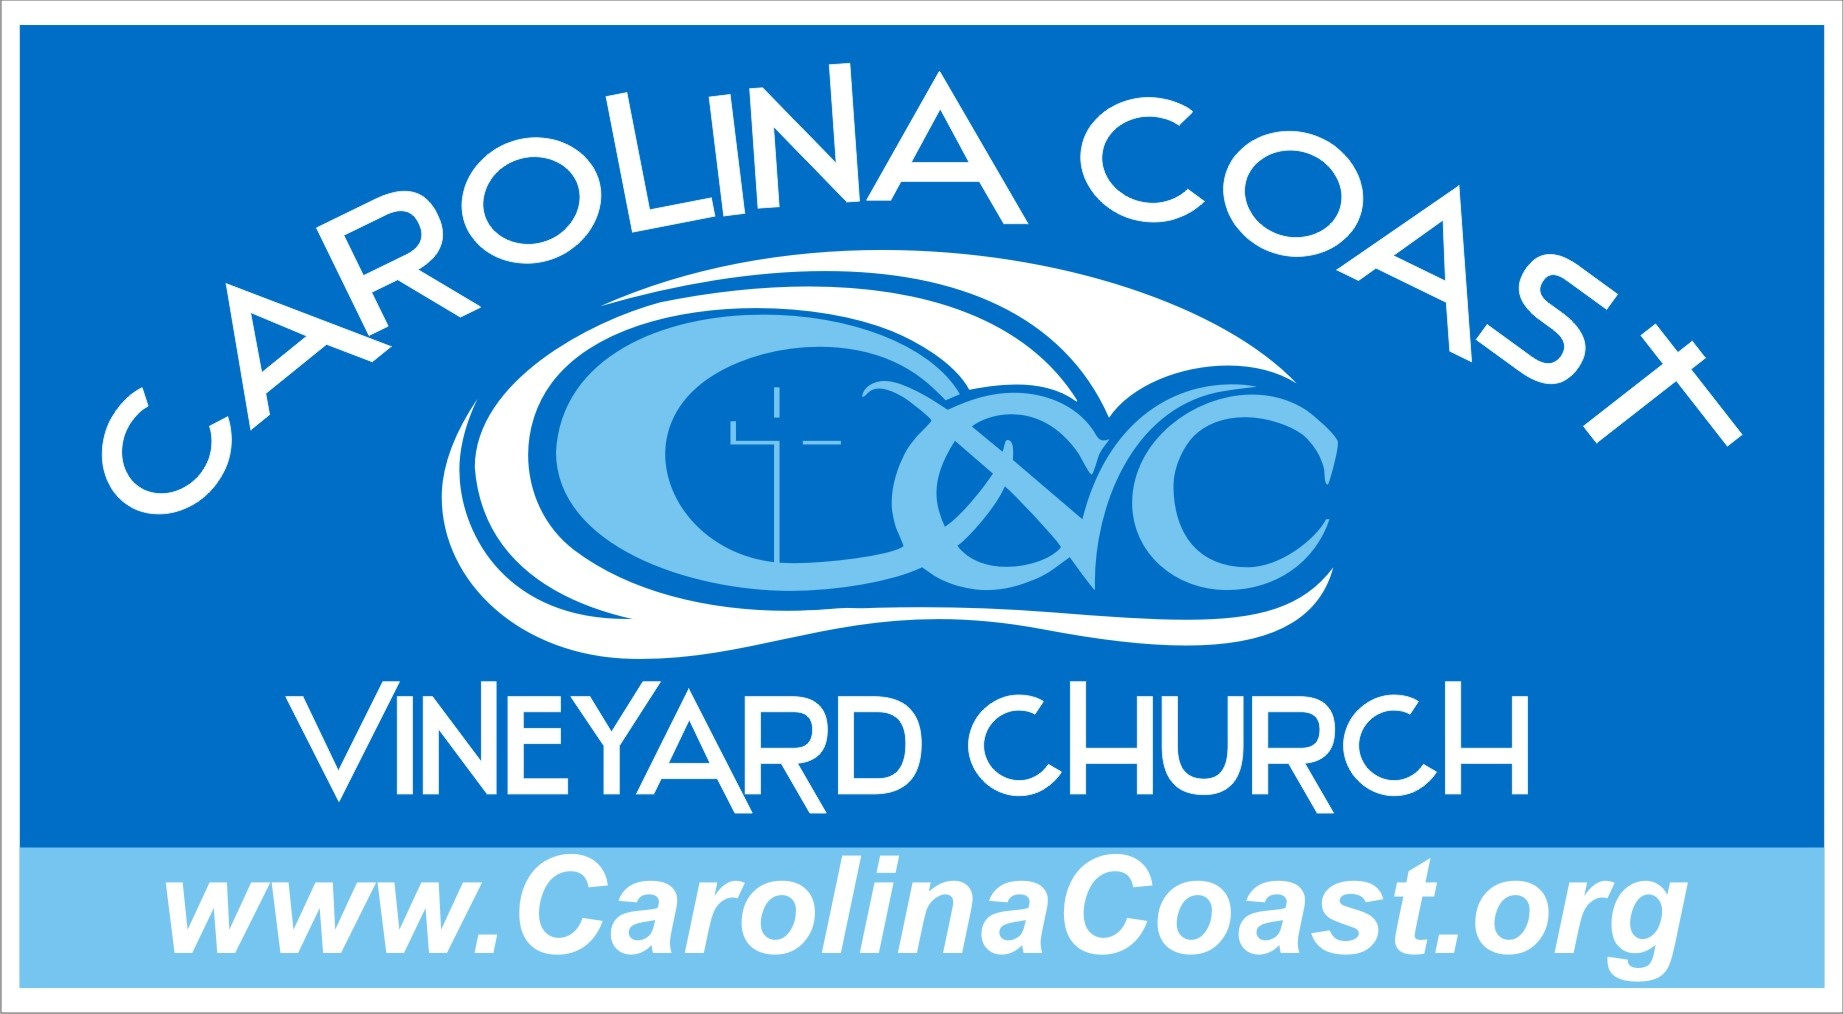 Carolina Coast Vineyard Church